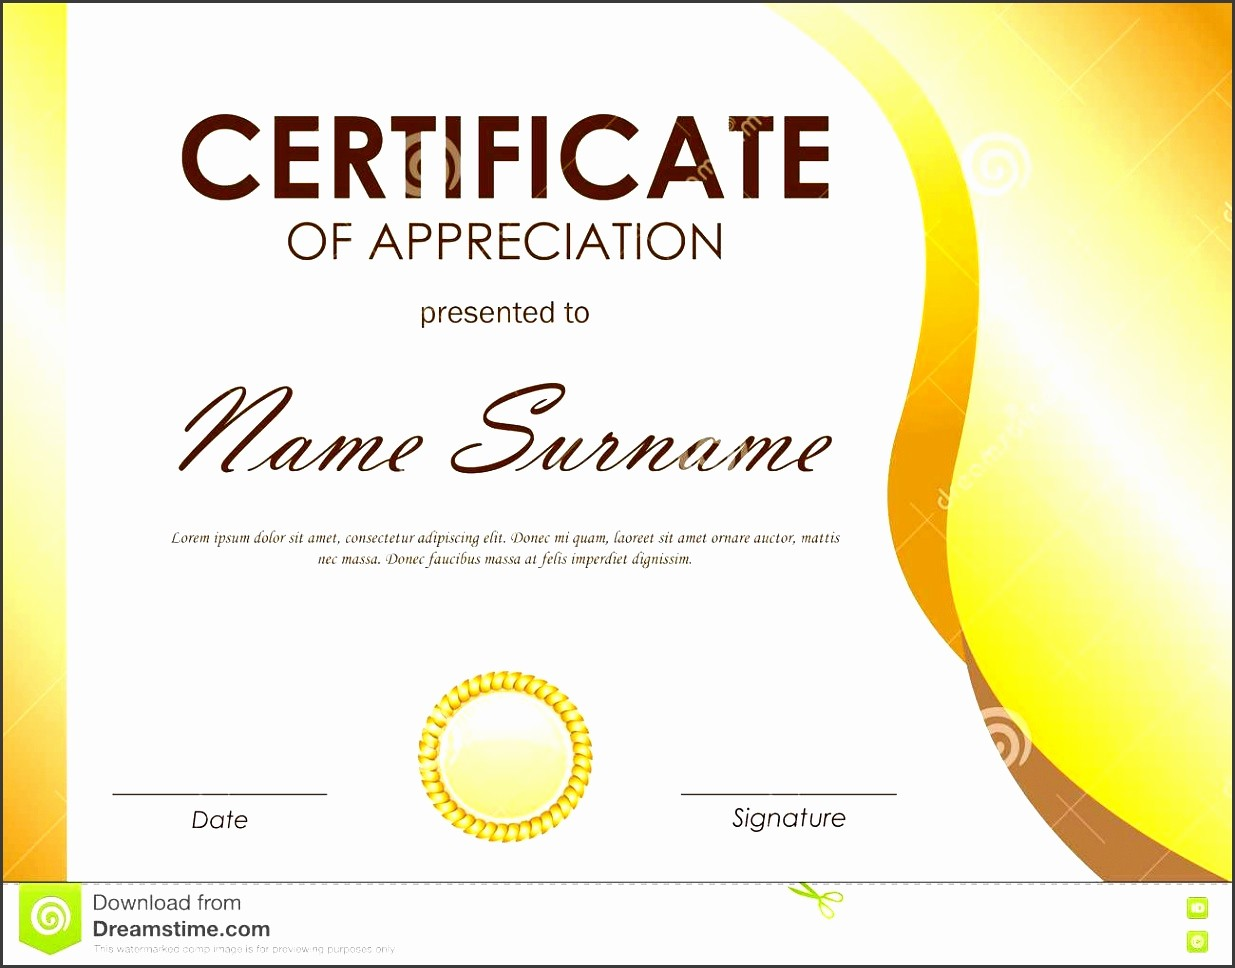 Appreciation Certificate Templates for Word Best Of 8 Easy to Use Certificate Appreciation Template